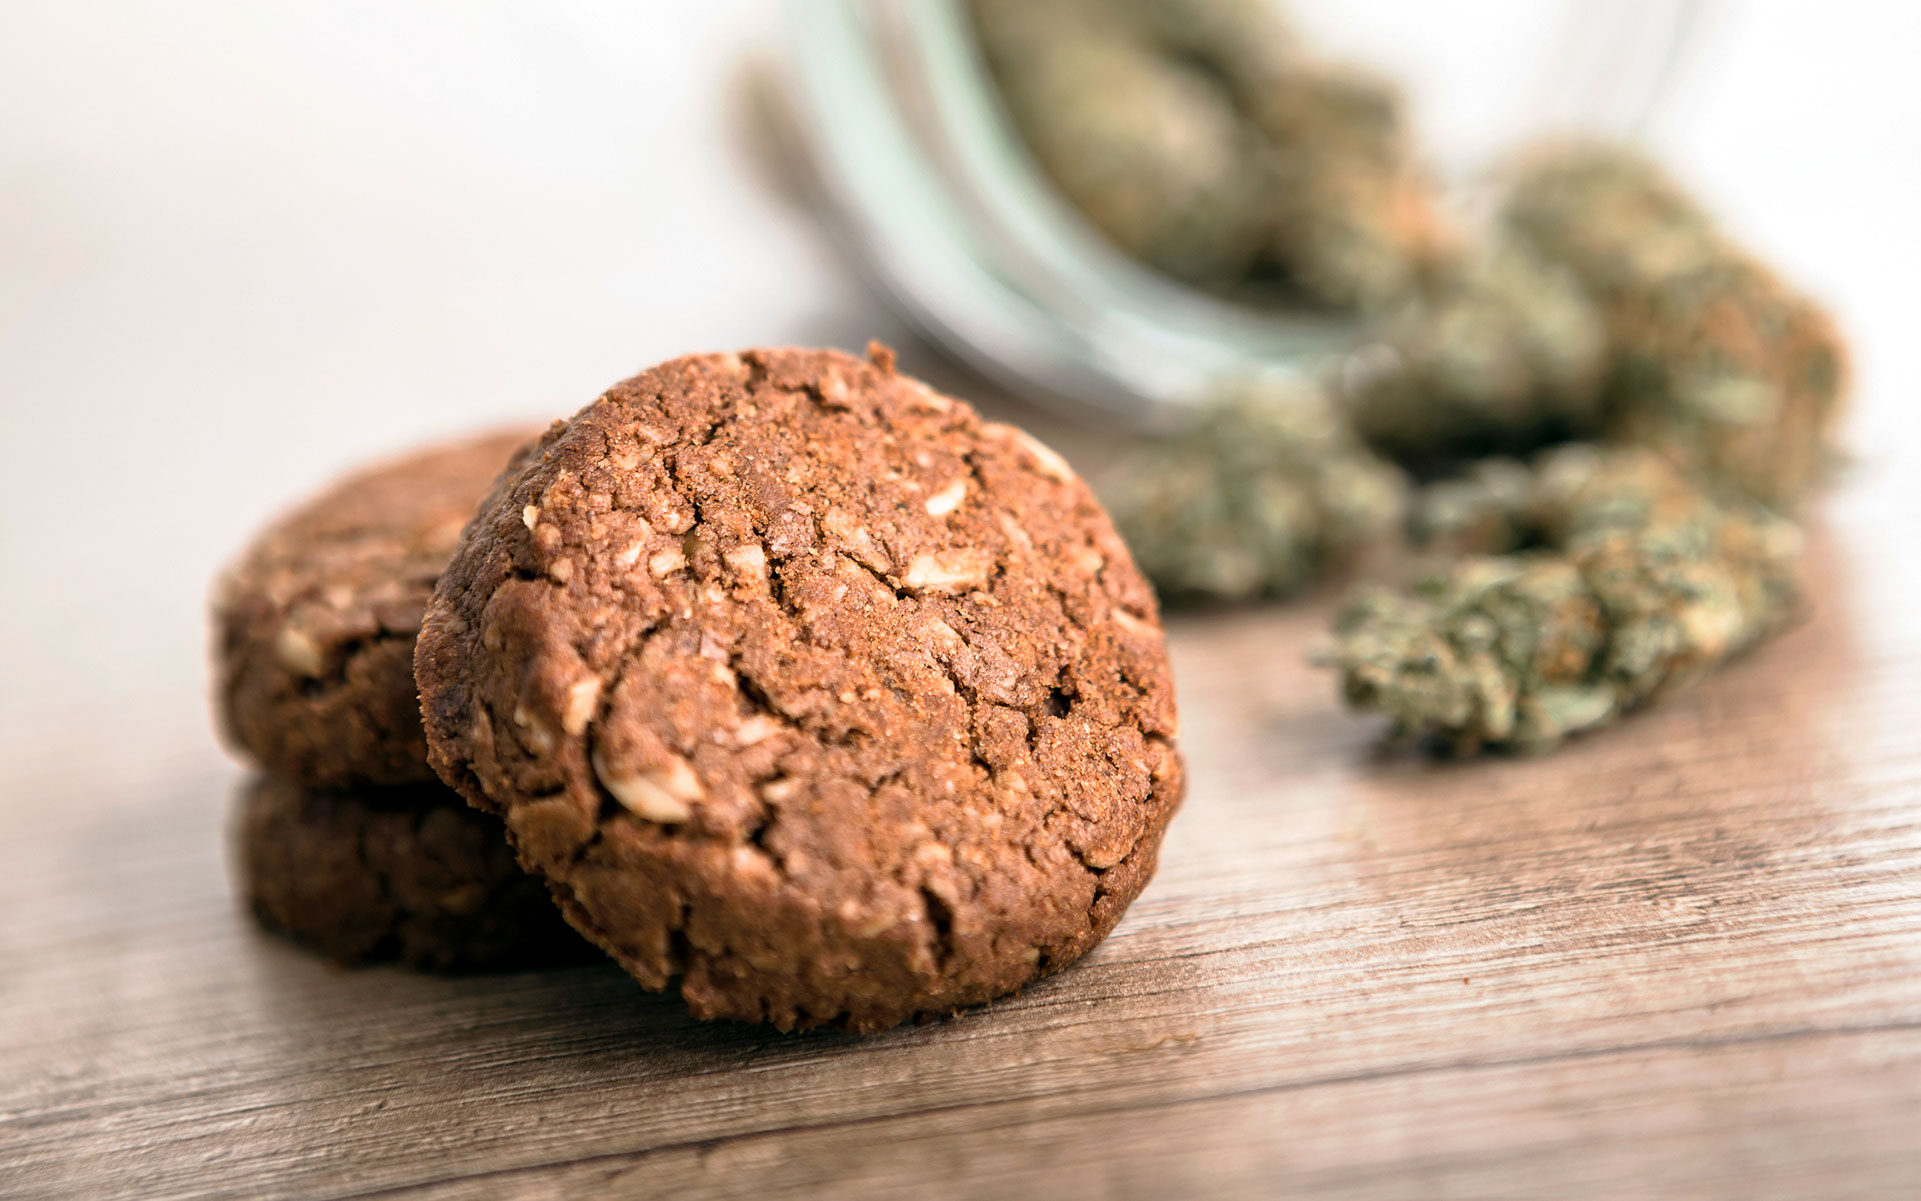 CBD edibles: What are they and what's to know? | Leafly